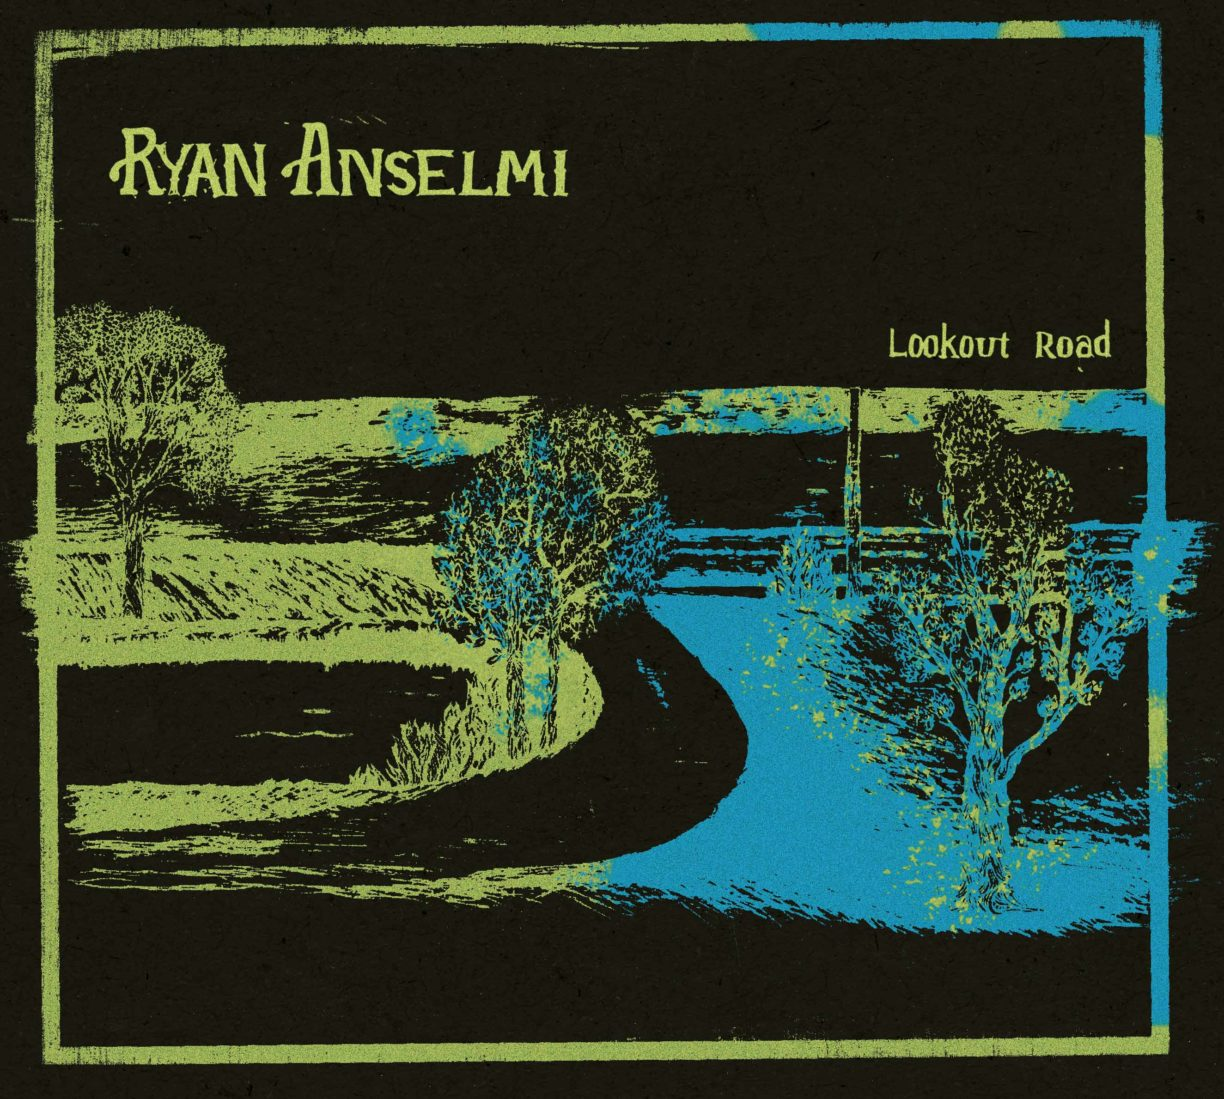 ryan-anselmi-lookout-road-2019